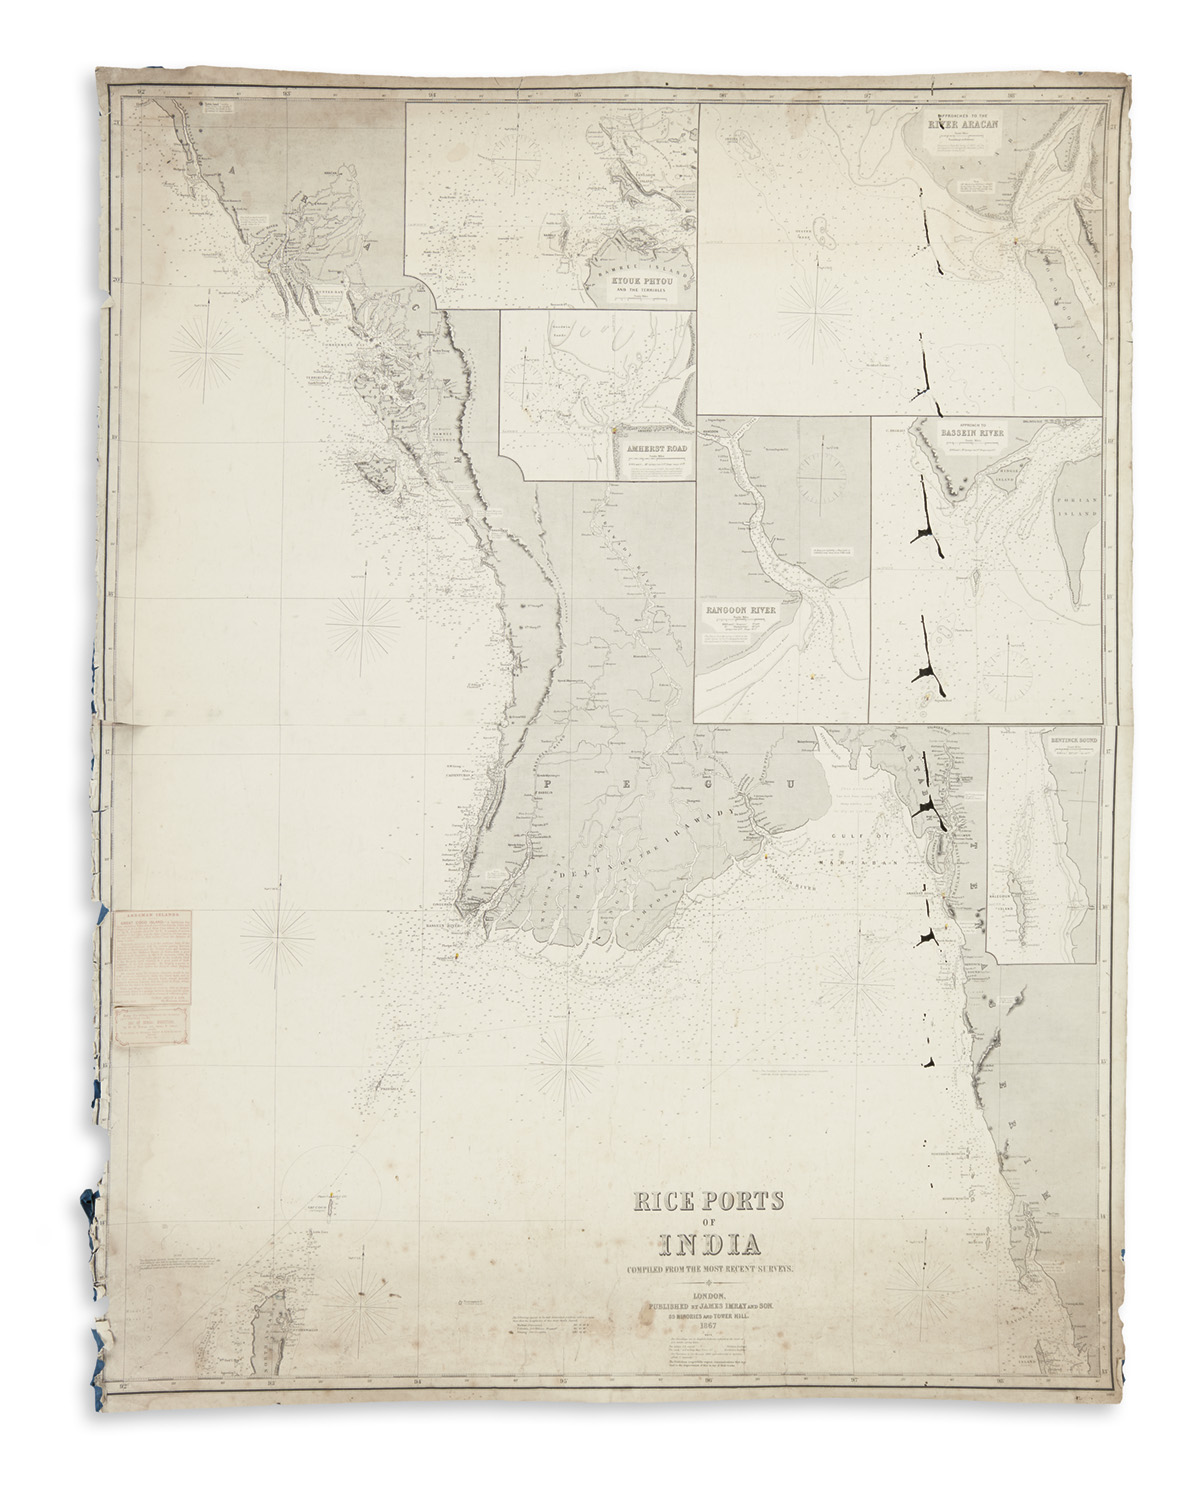 (BLUEBACK CHARTS.) Group of five large engraved charts.